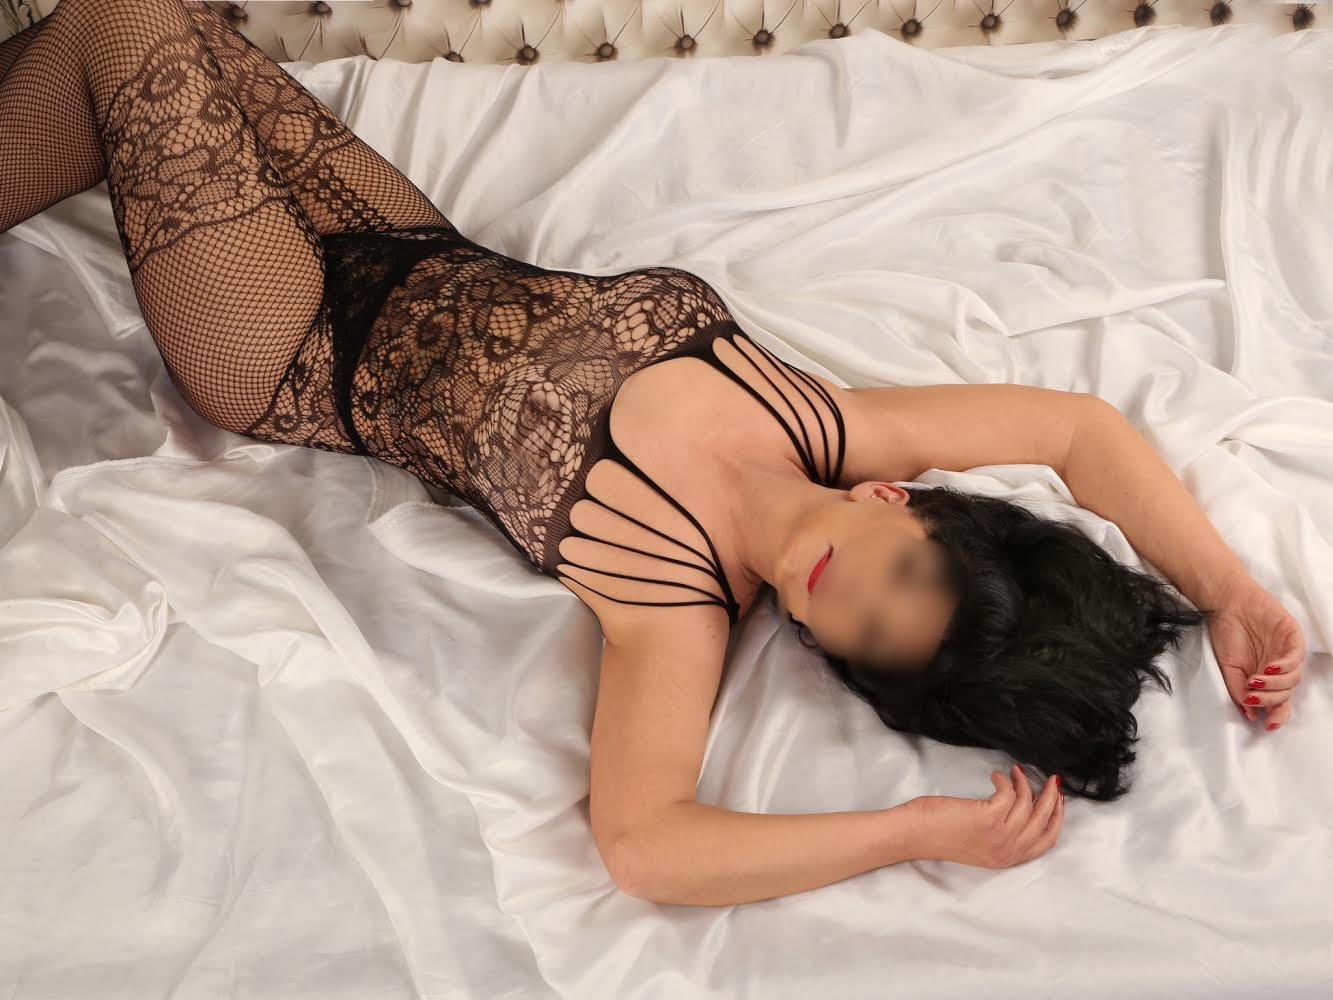 busty english escorts consuelo escort